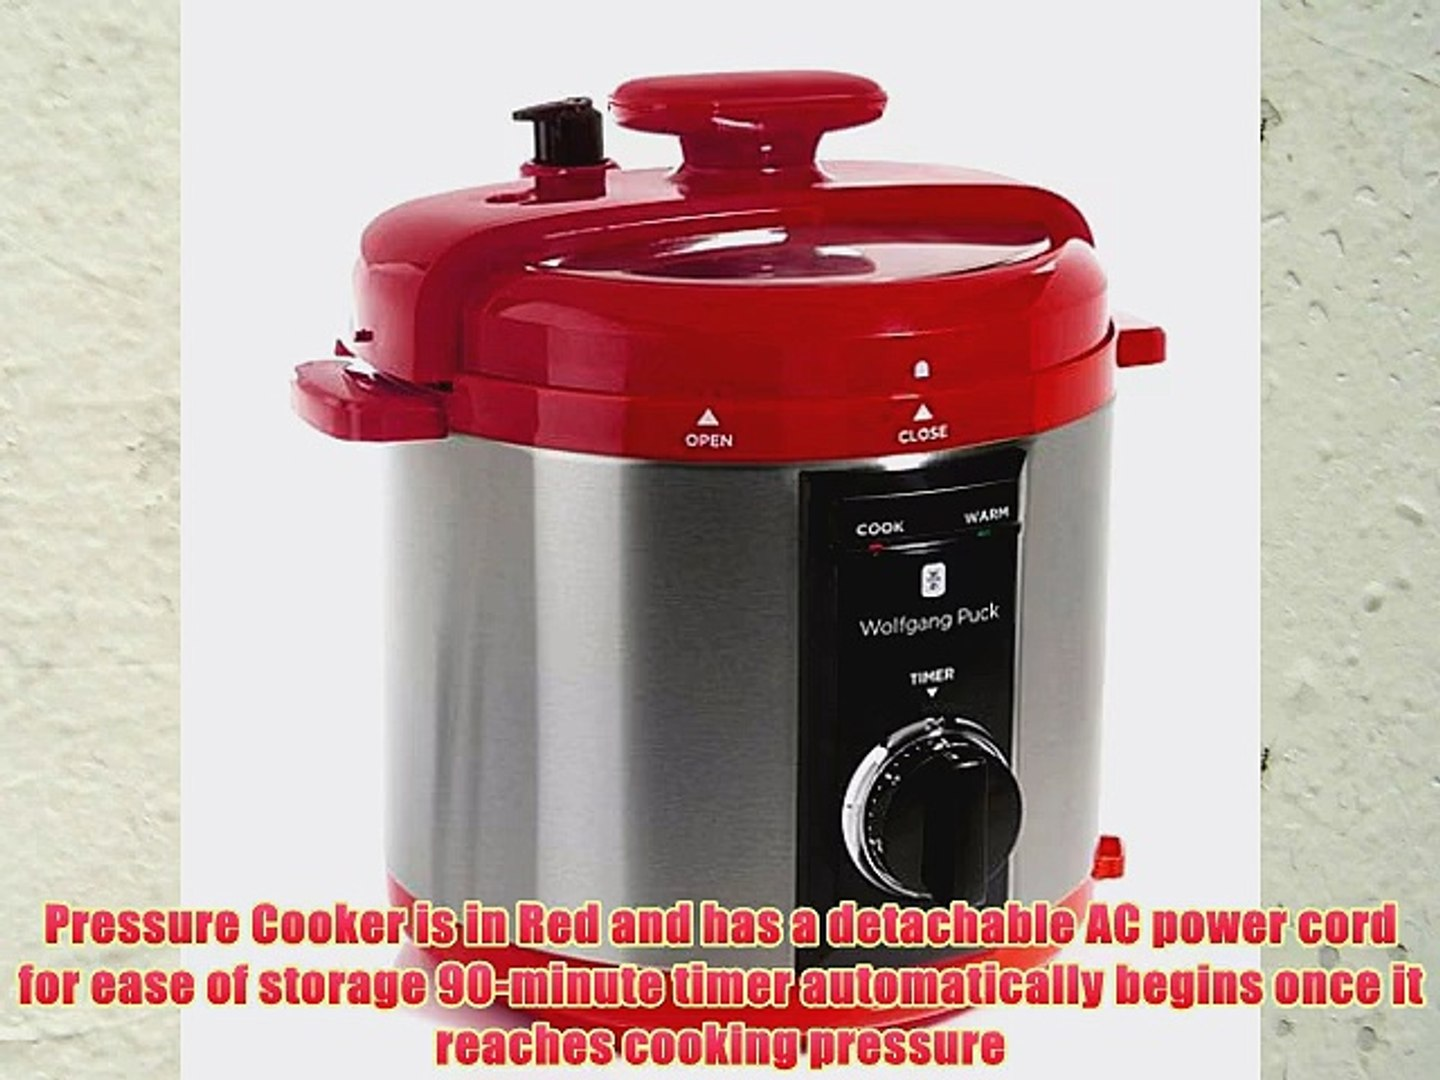 Wolfgang Puck Automatic 8 Quart Rapid Pressure Cooker Red Video Dailymotion